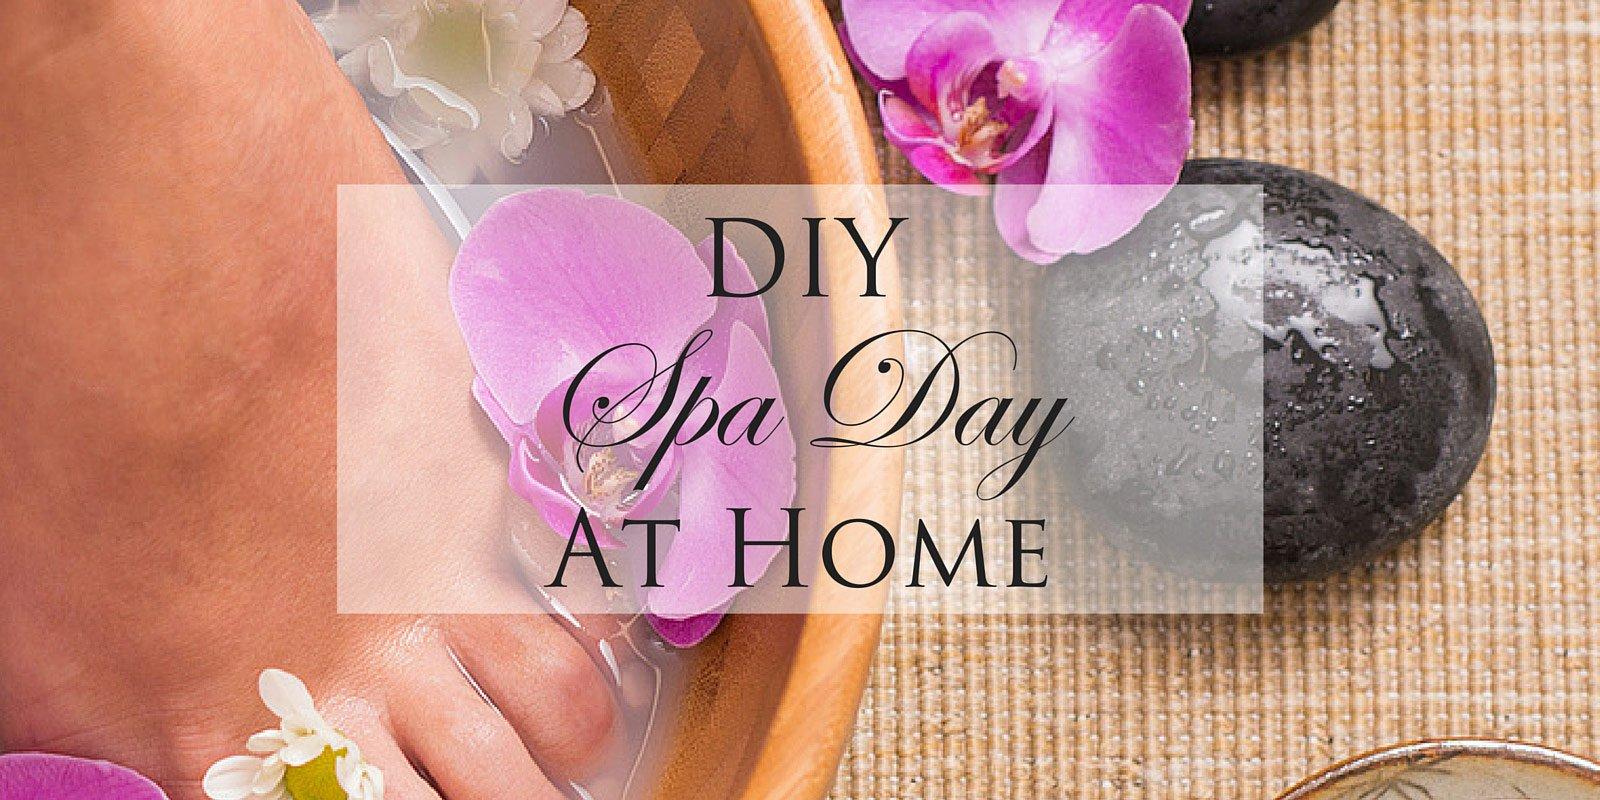 DIY Spa Day at Home